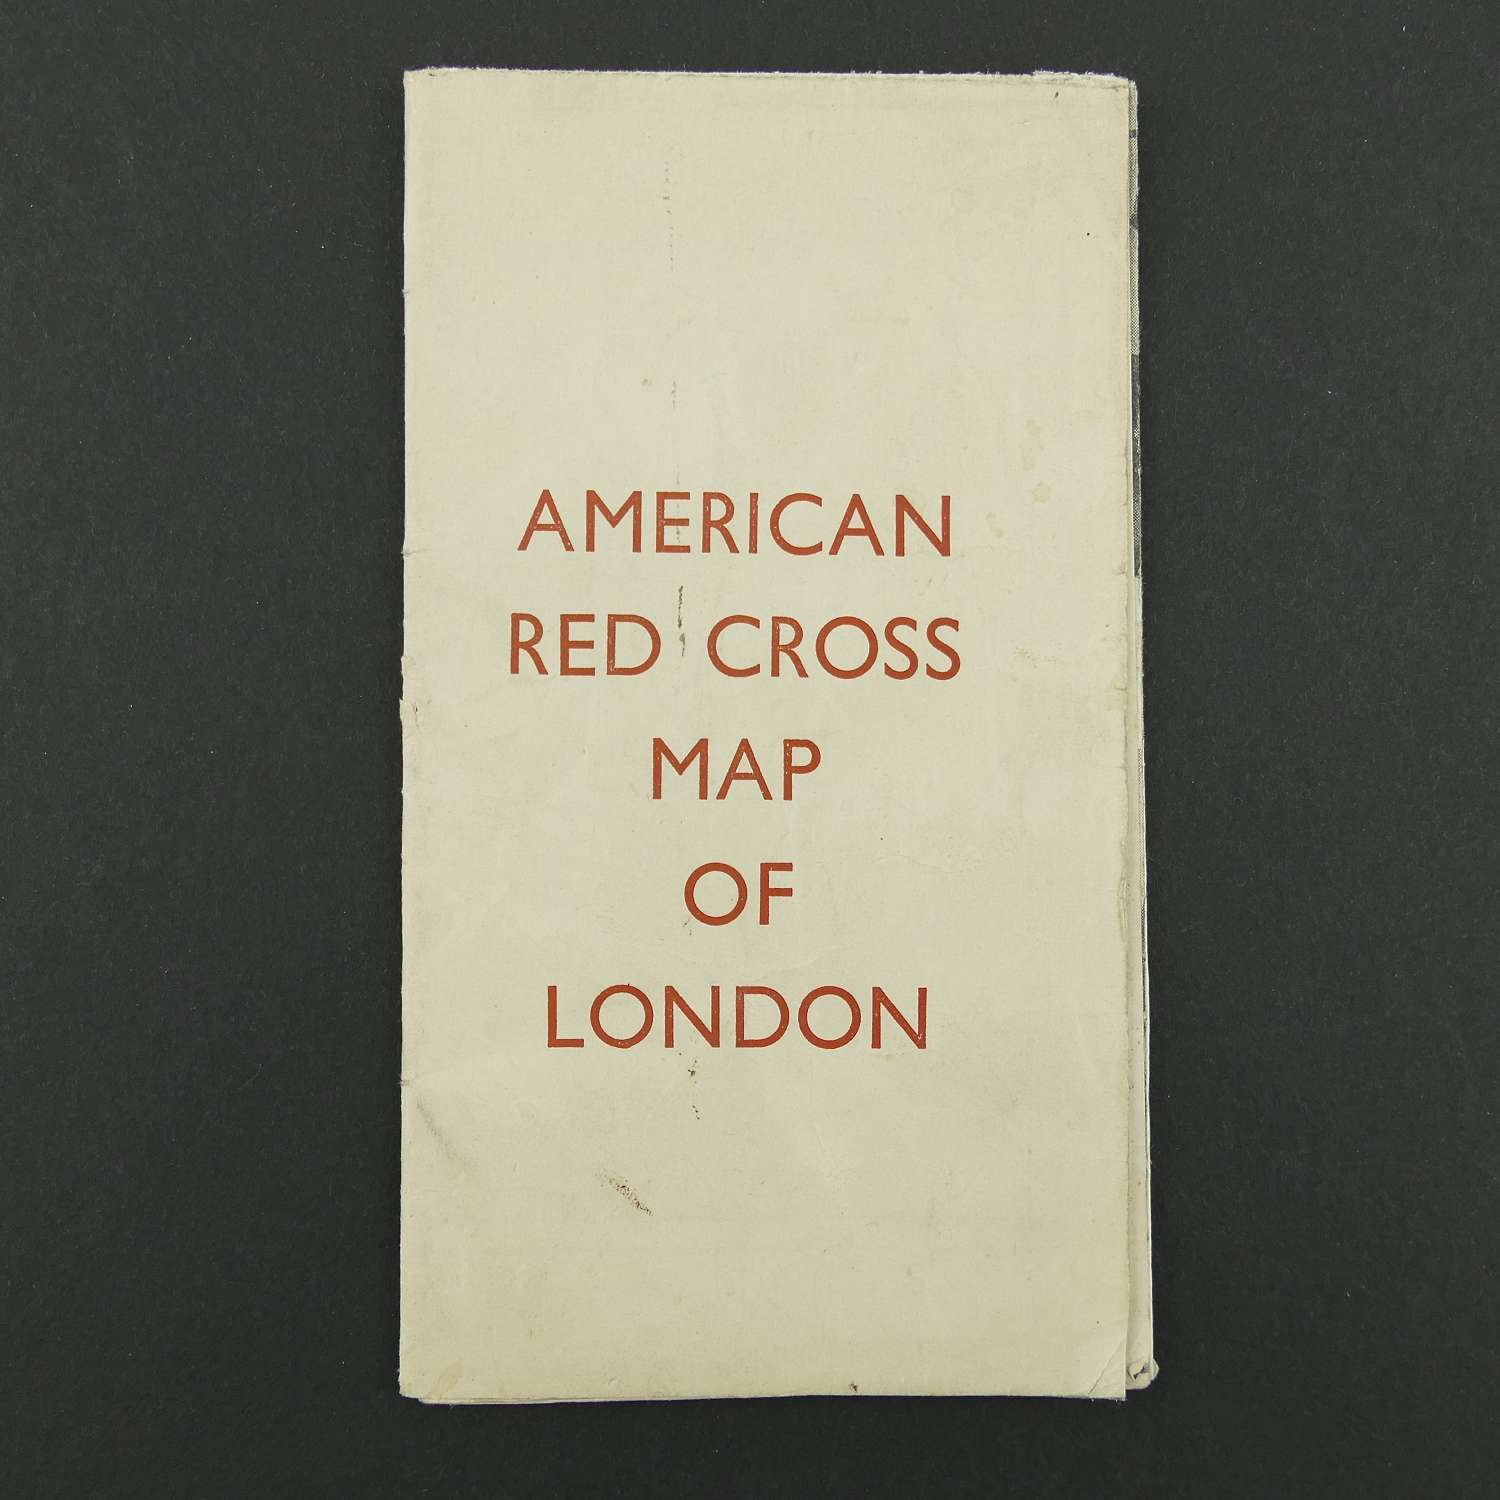 American Red Cross map of London